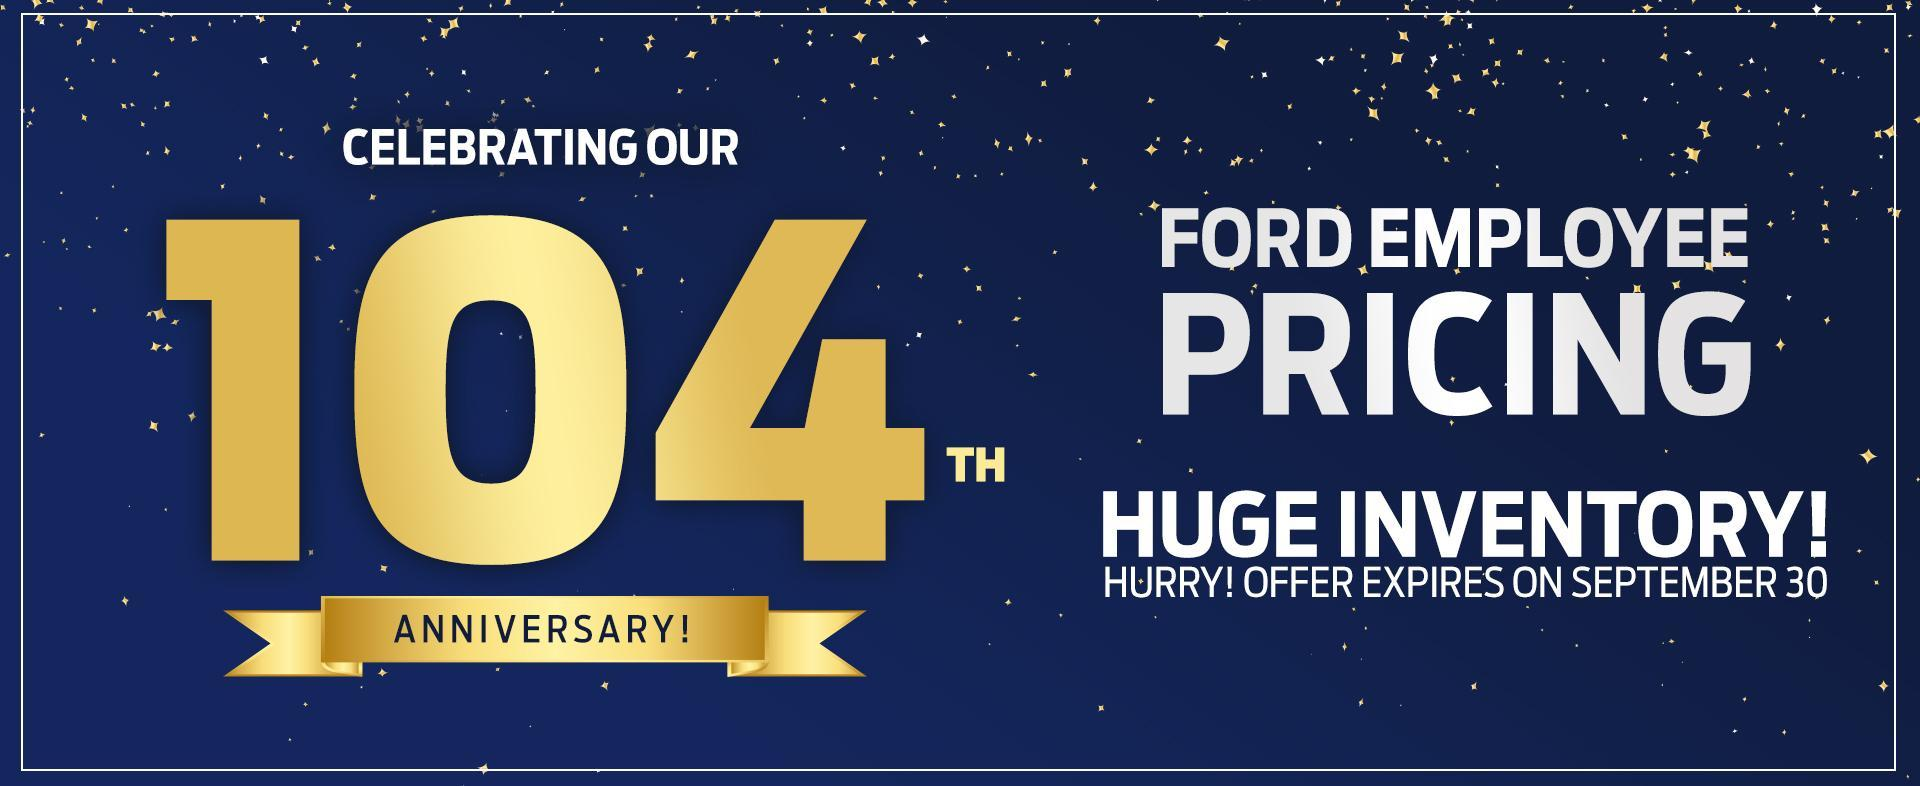 Ford Employee Pricing and 104th Anniversary slide